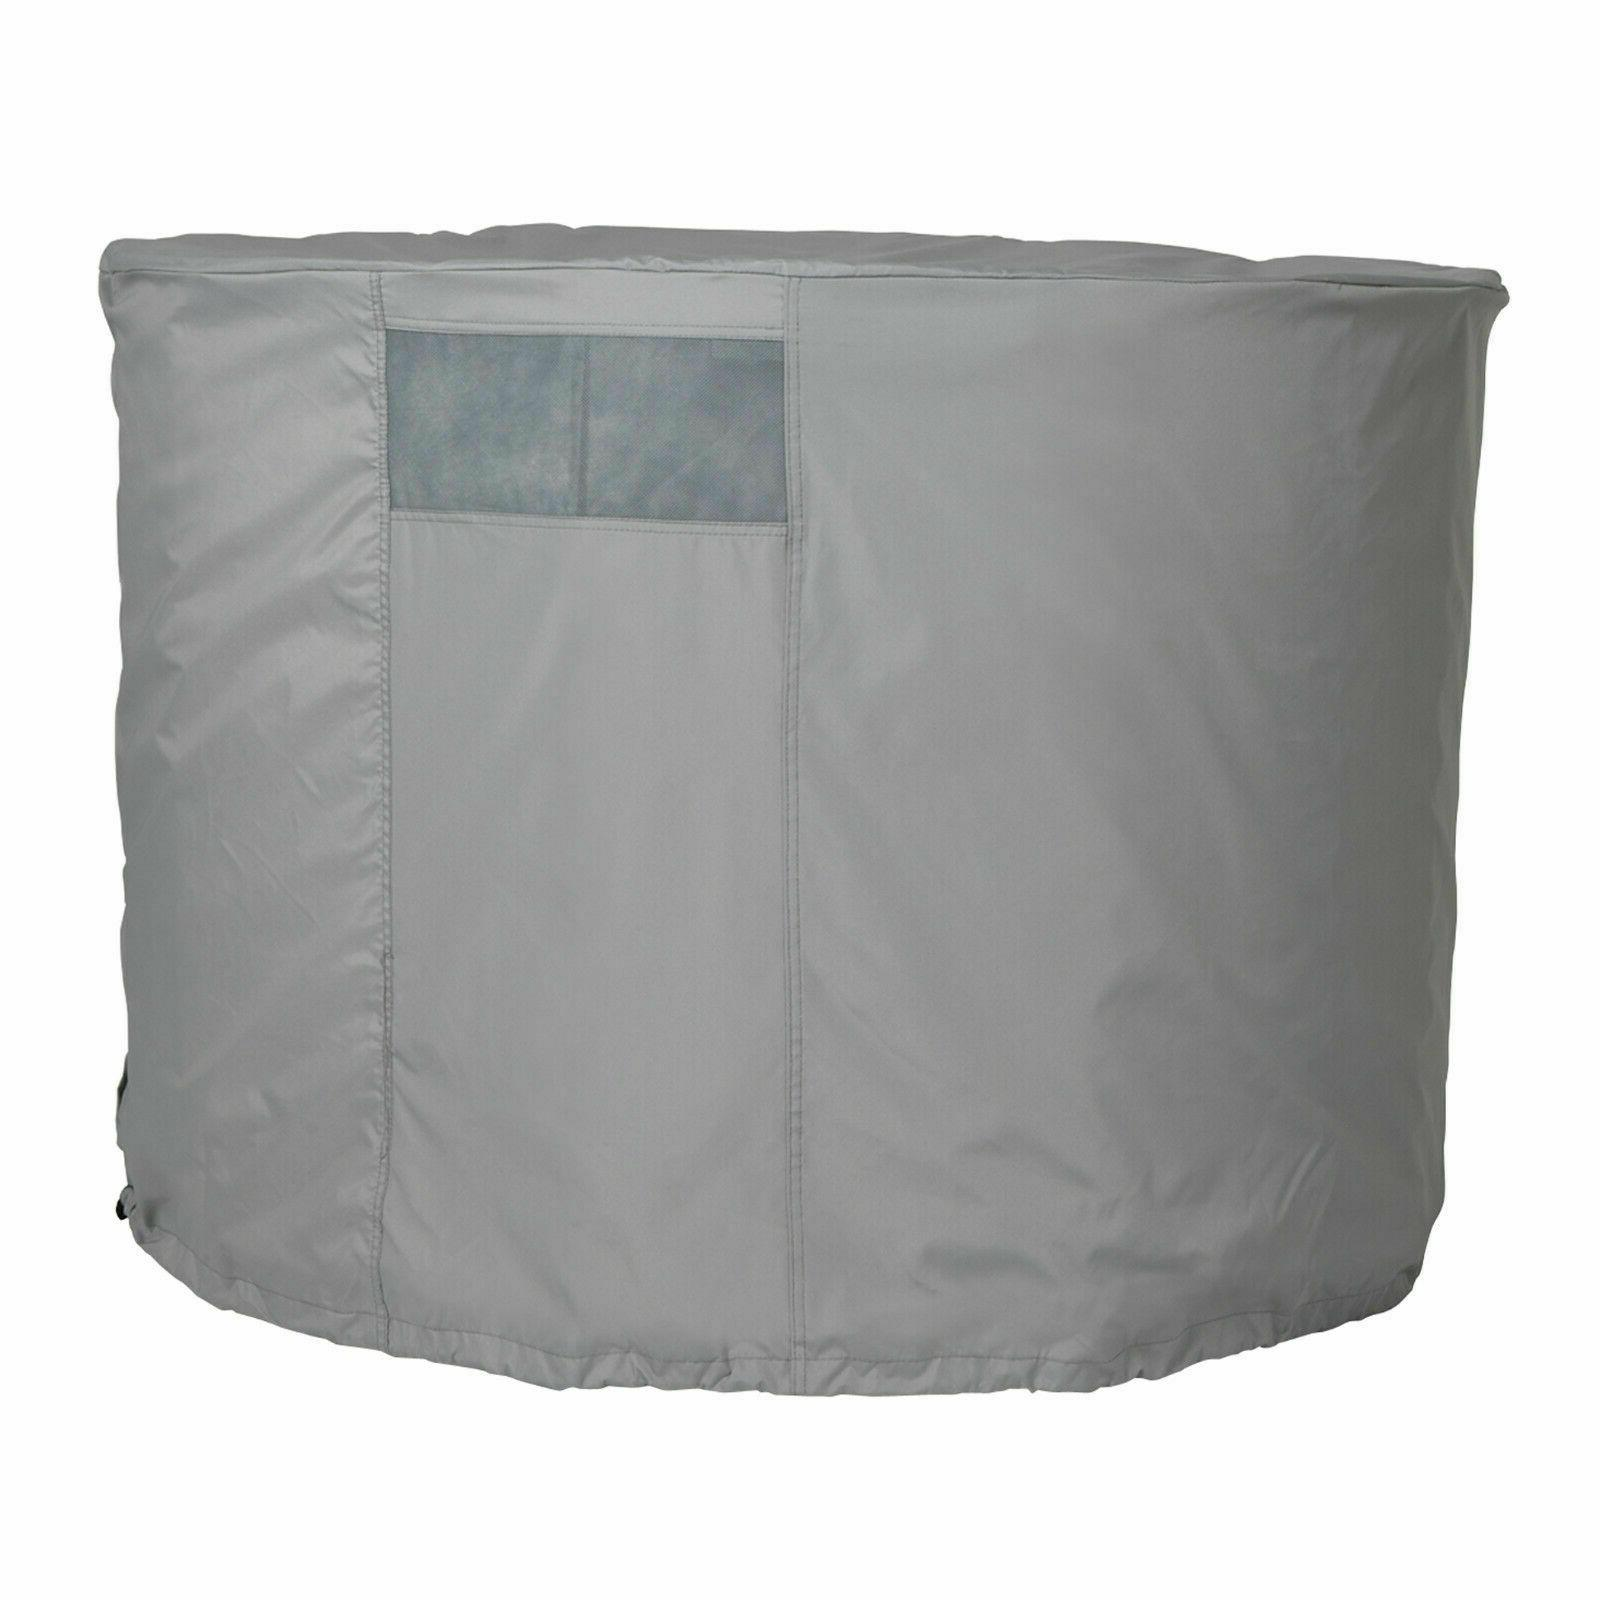 Classic Accessories Duty Round Evaporative Cooler Cover Swamp